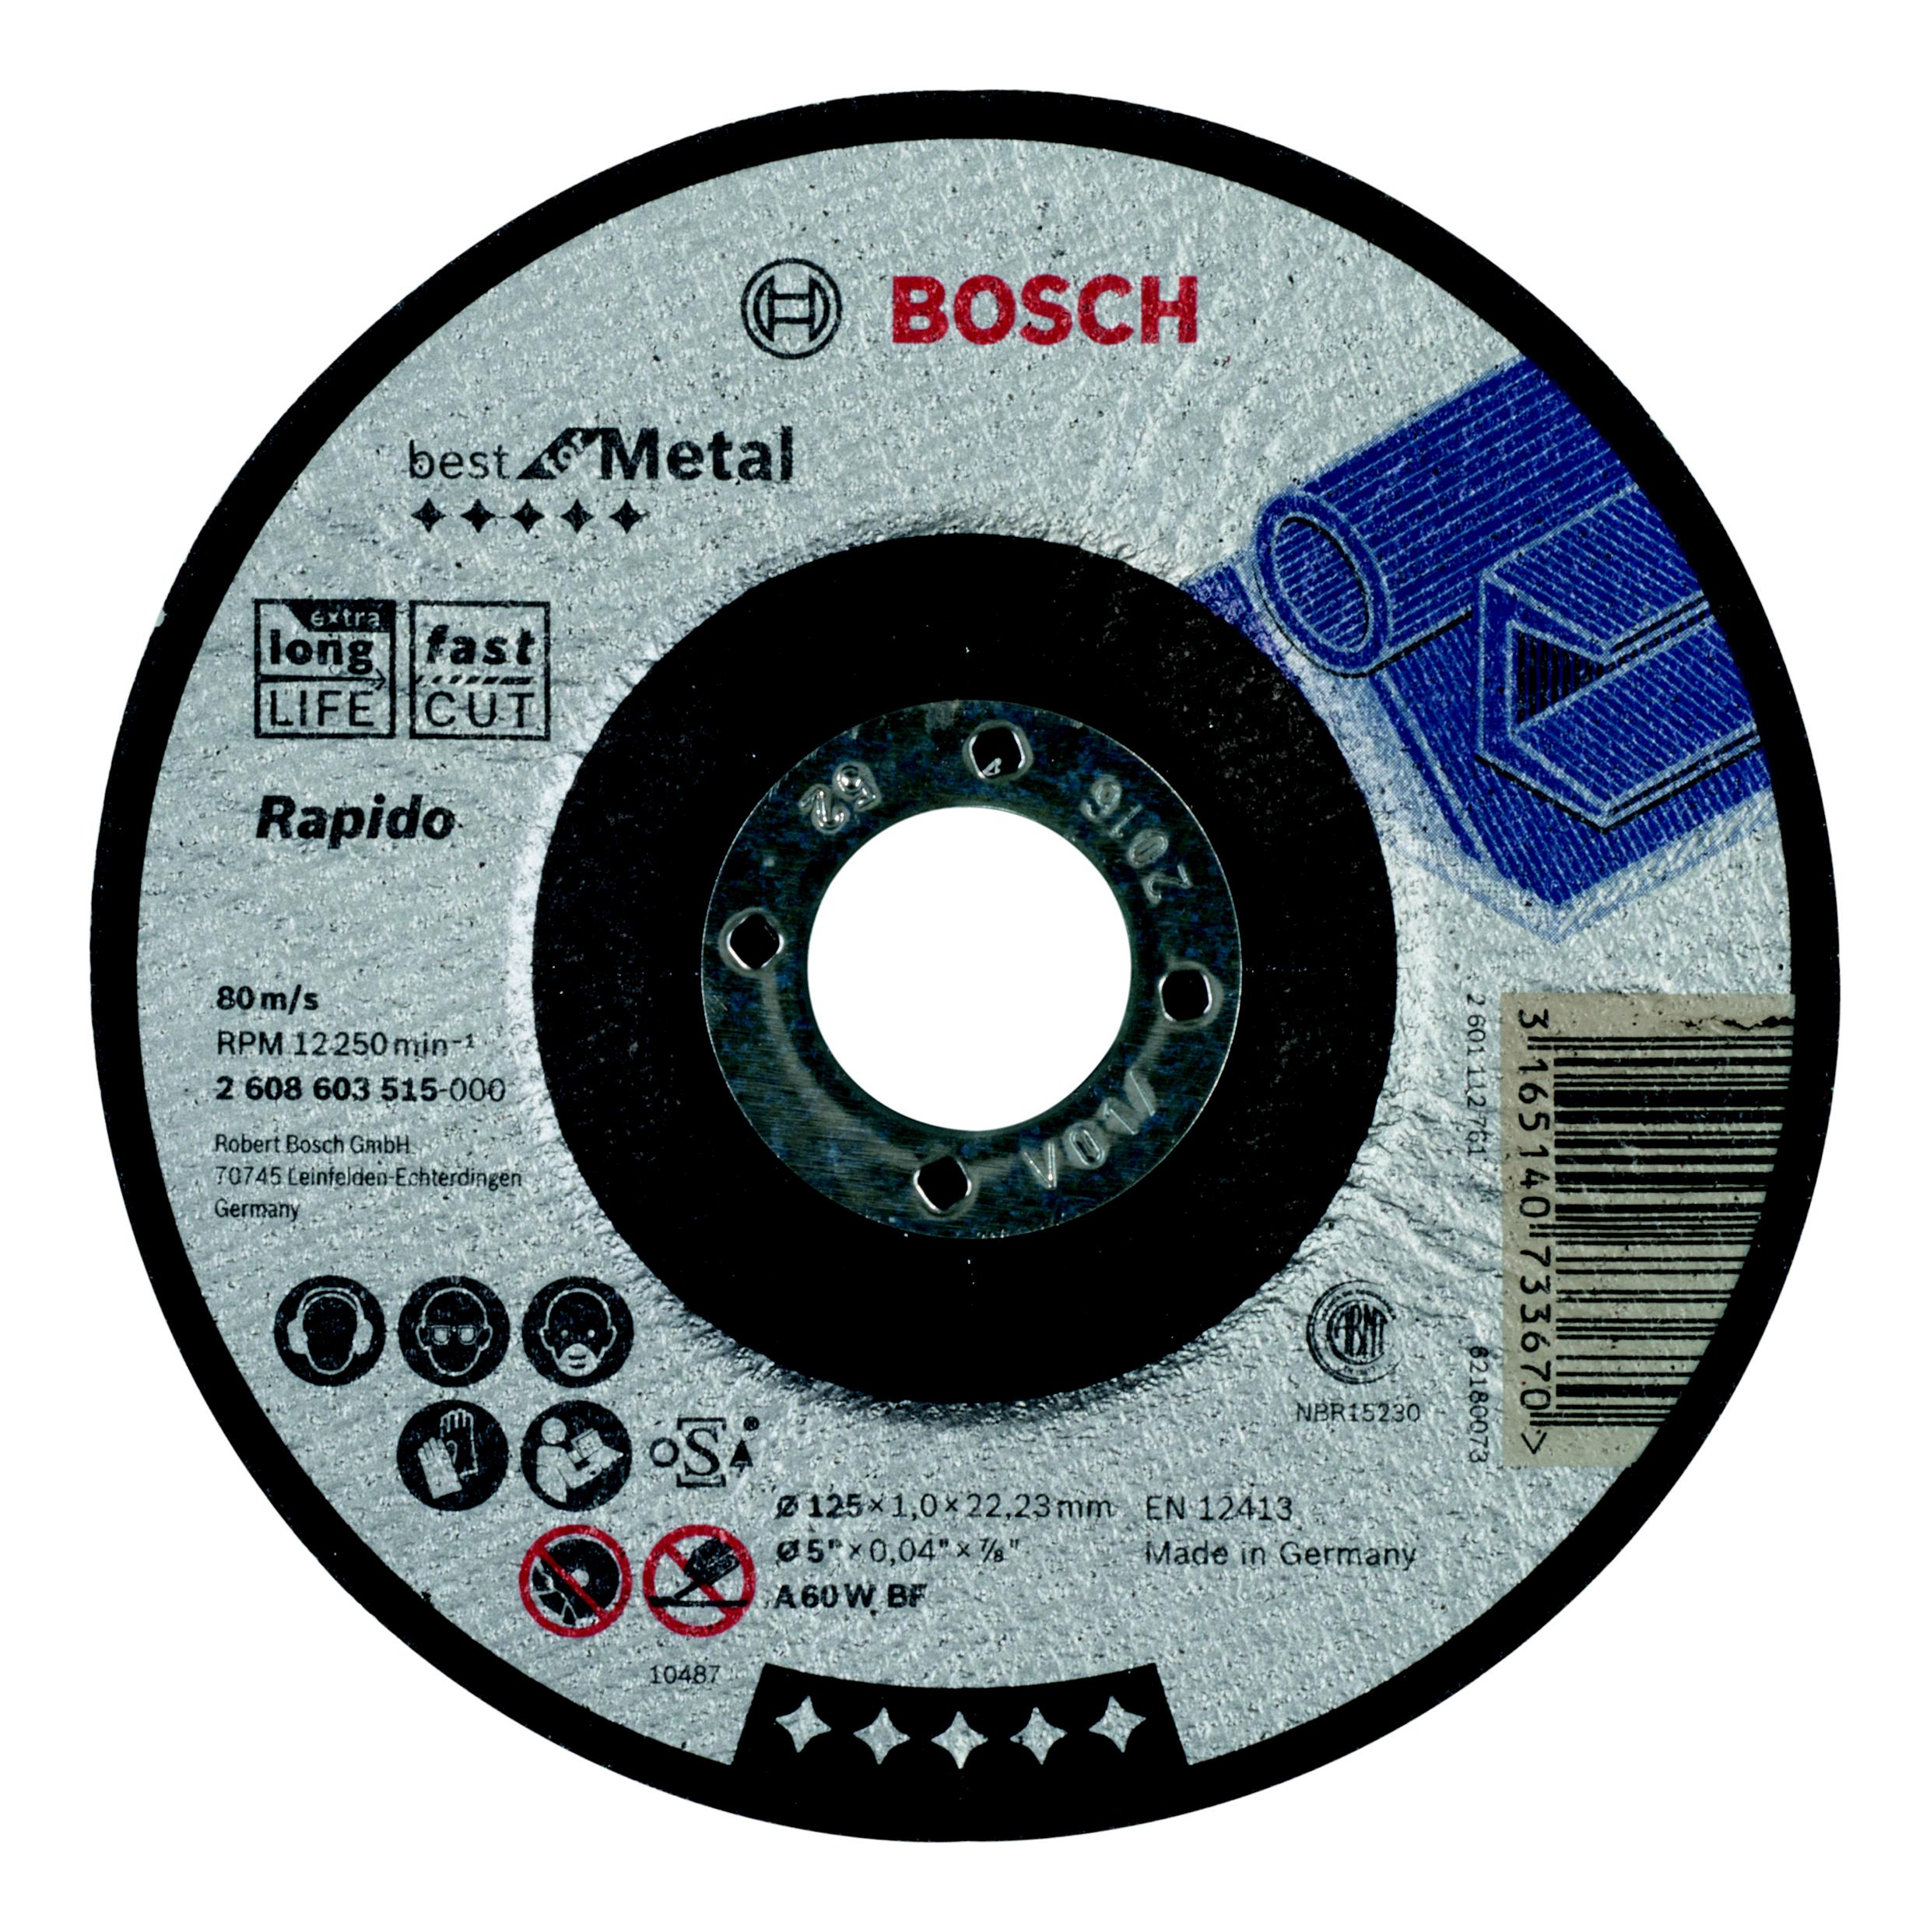 Круг отрезной Bosch Best for metal 180x1,6x22 выпуклый (2.608.603.521) bosch best for metal 2608606923